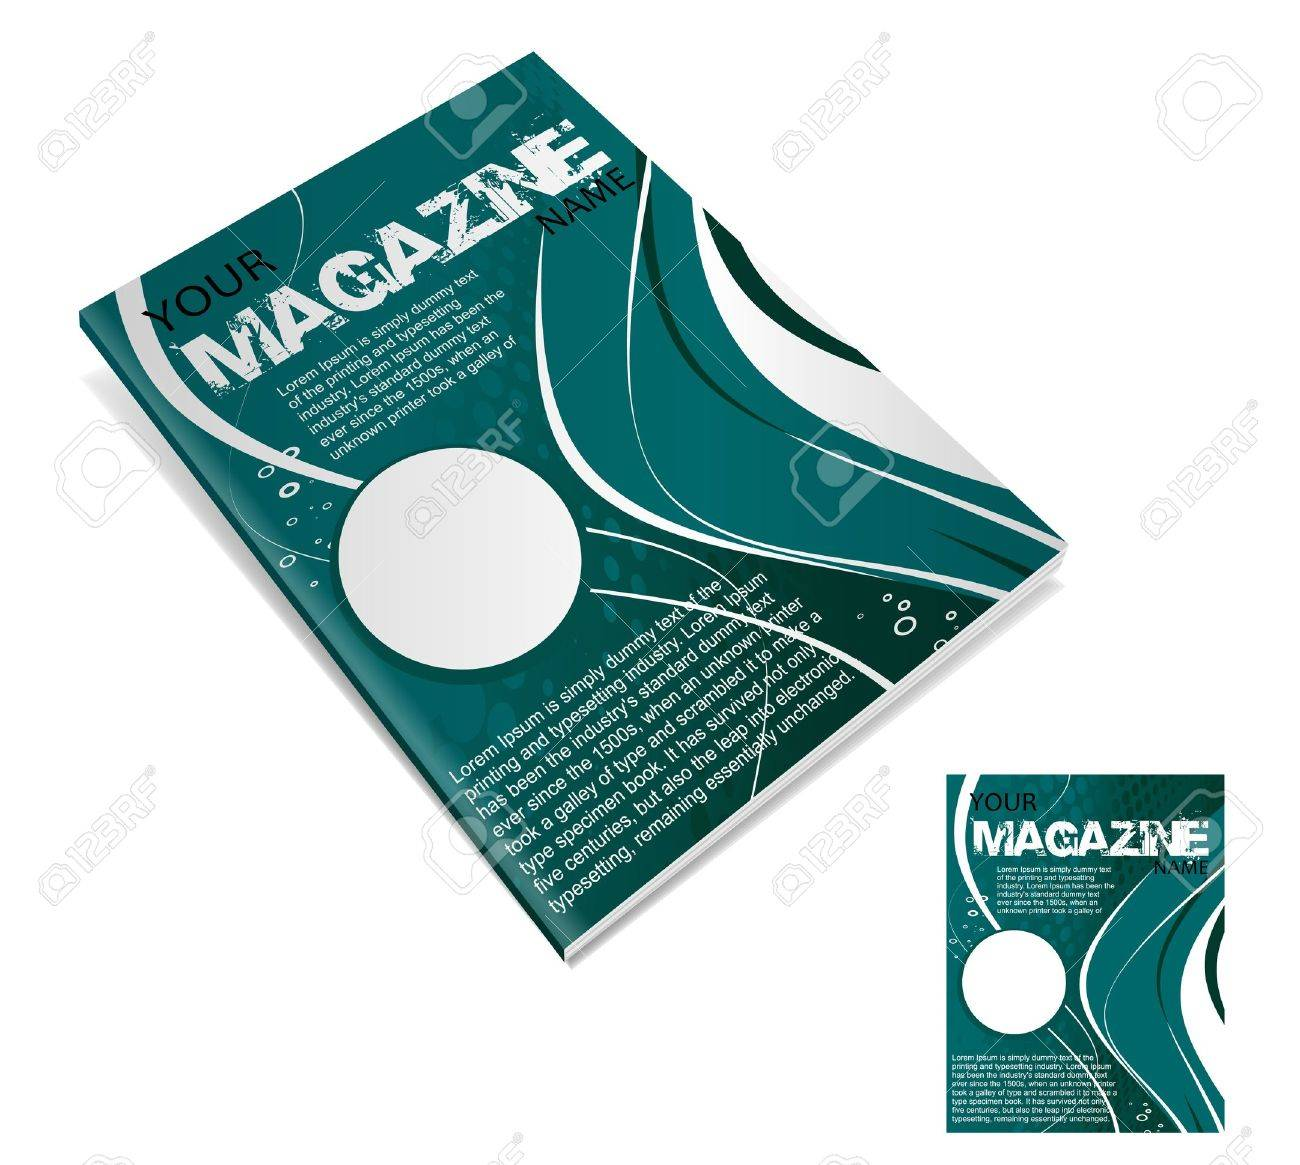 Magazine layout design template. Vector Illustration Stock Vector - 9610848